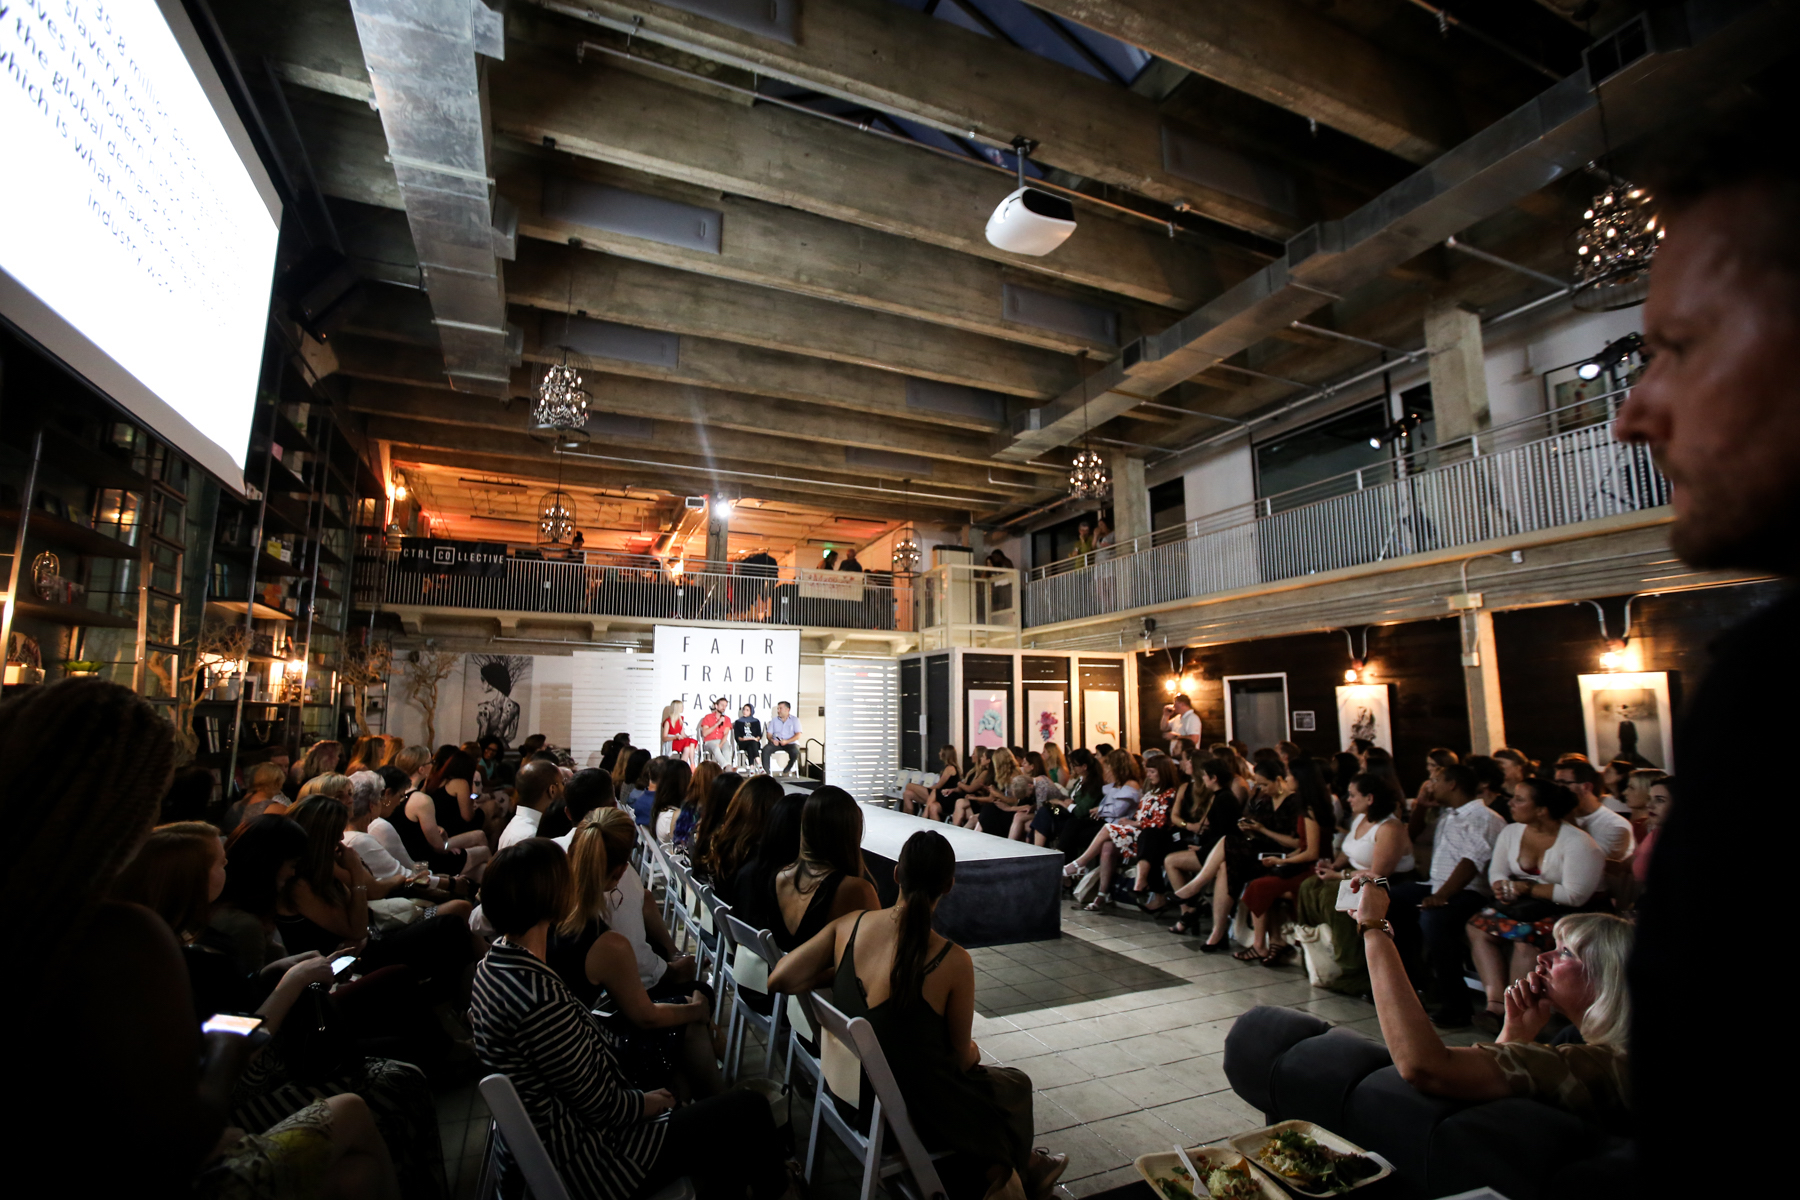 Fair Trade Fashion Show 2017 Encourages Social, Environmental & Political Activism